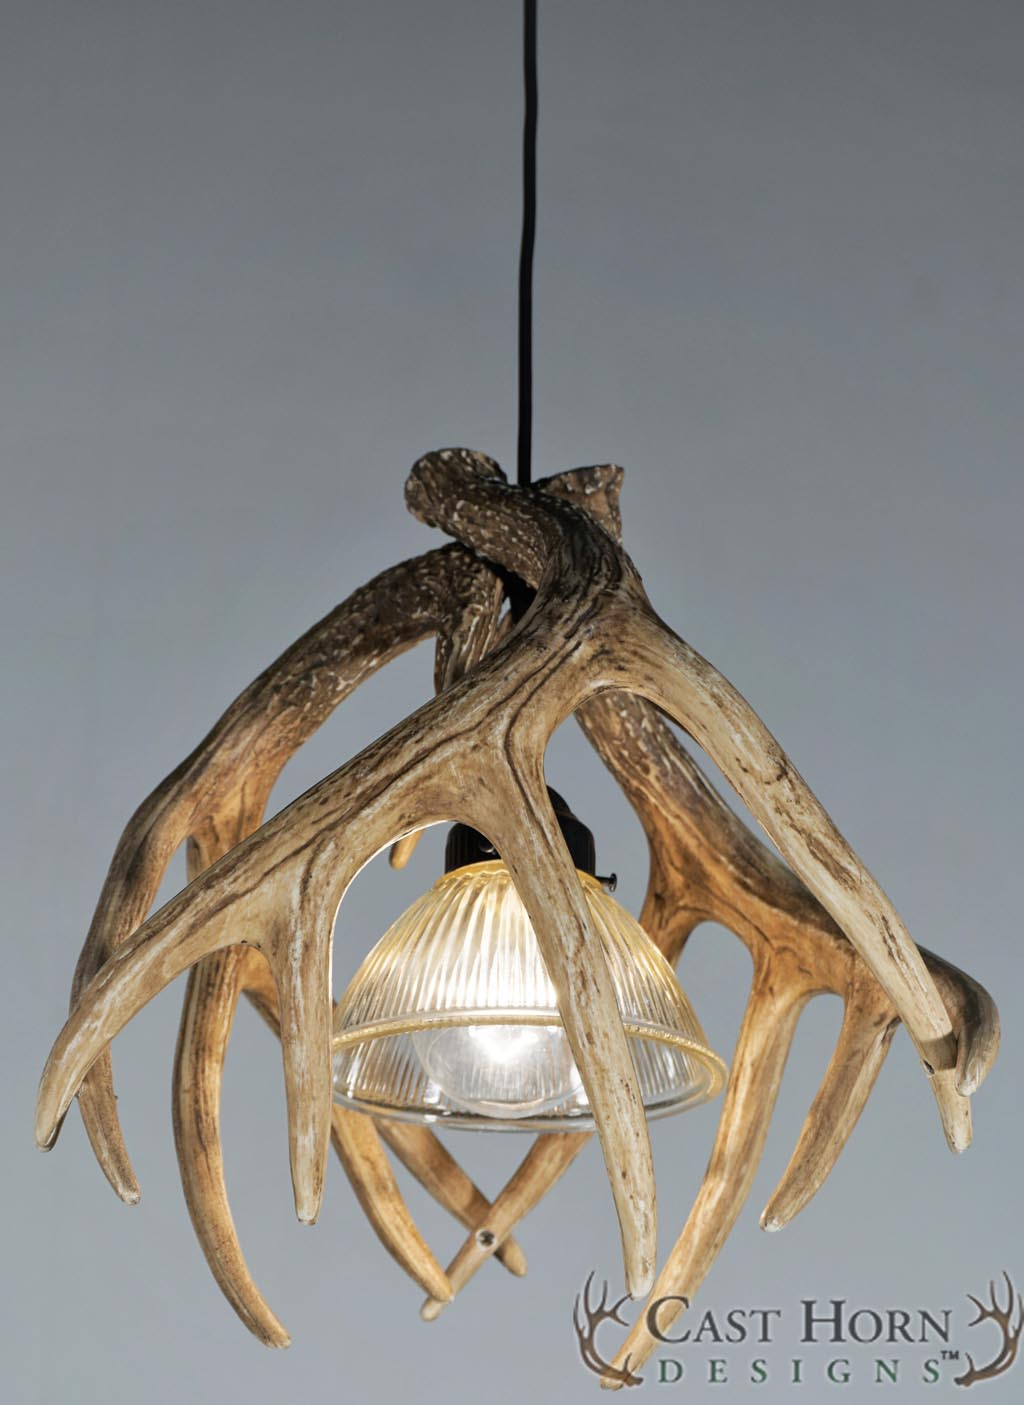 Replica Deer Antler Chandelier